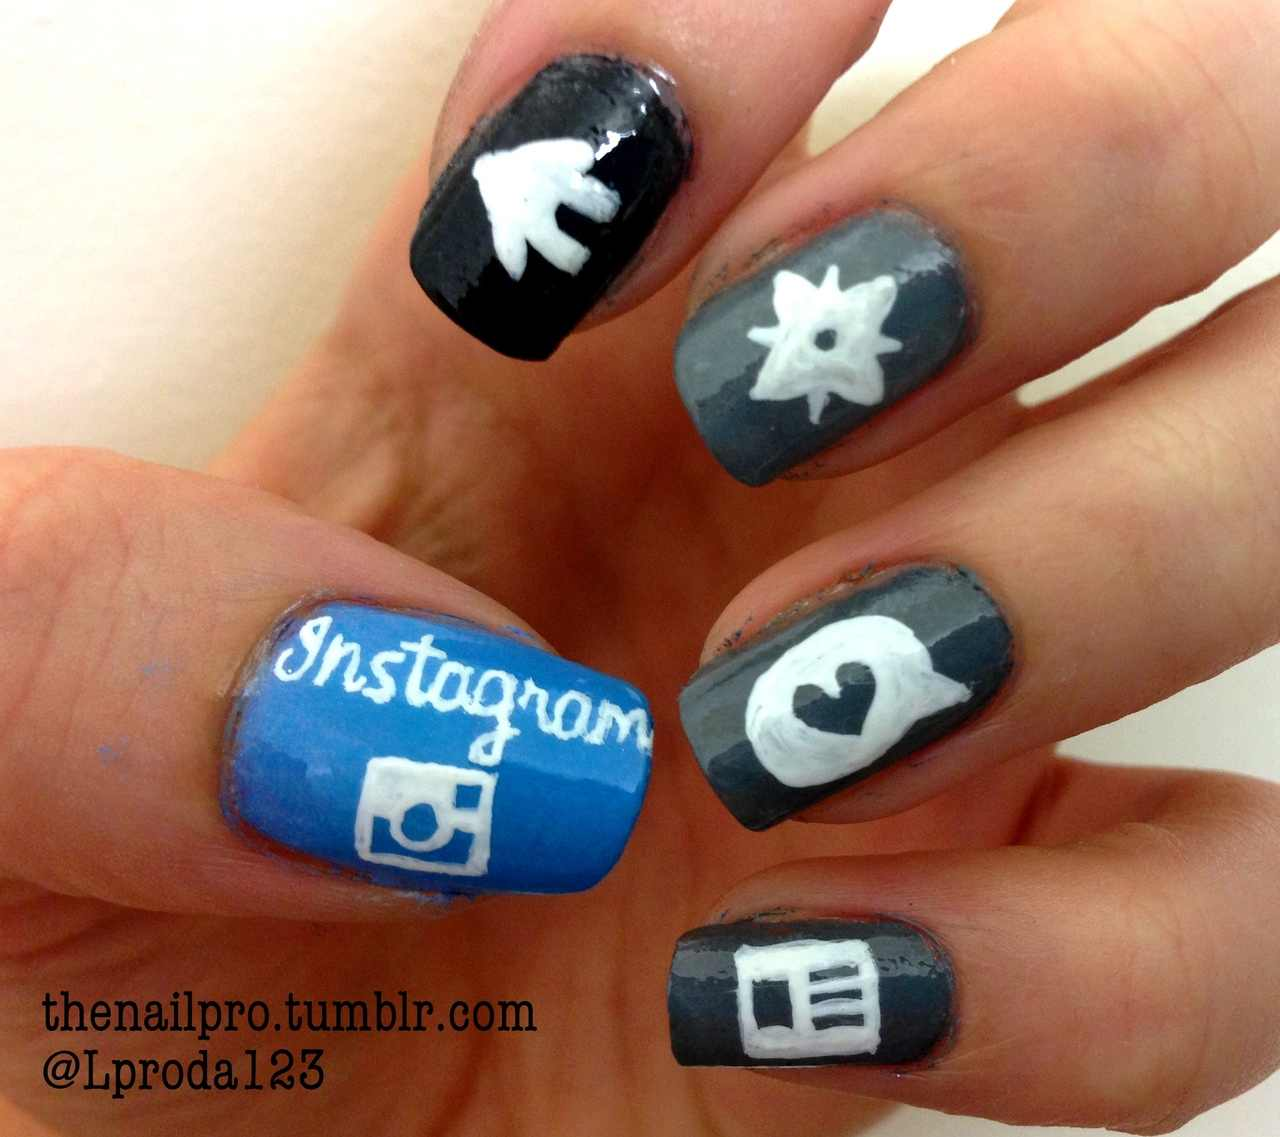 Nails, Nail Art Instagram